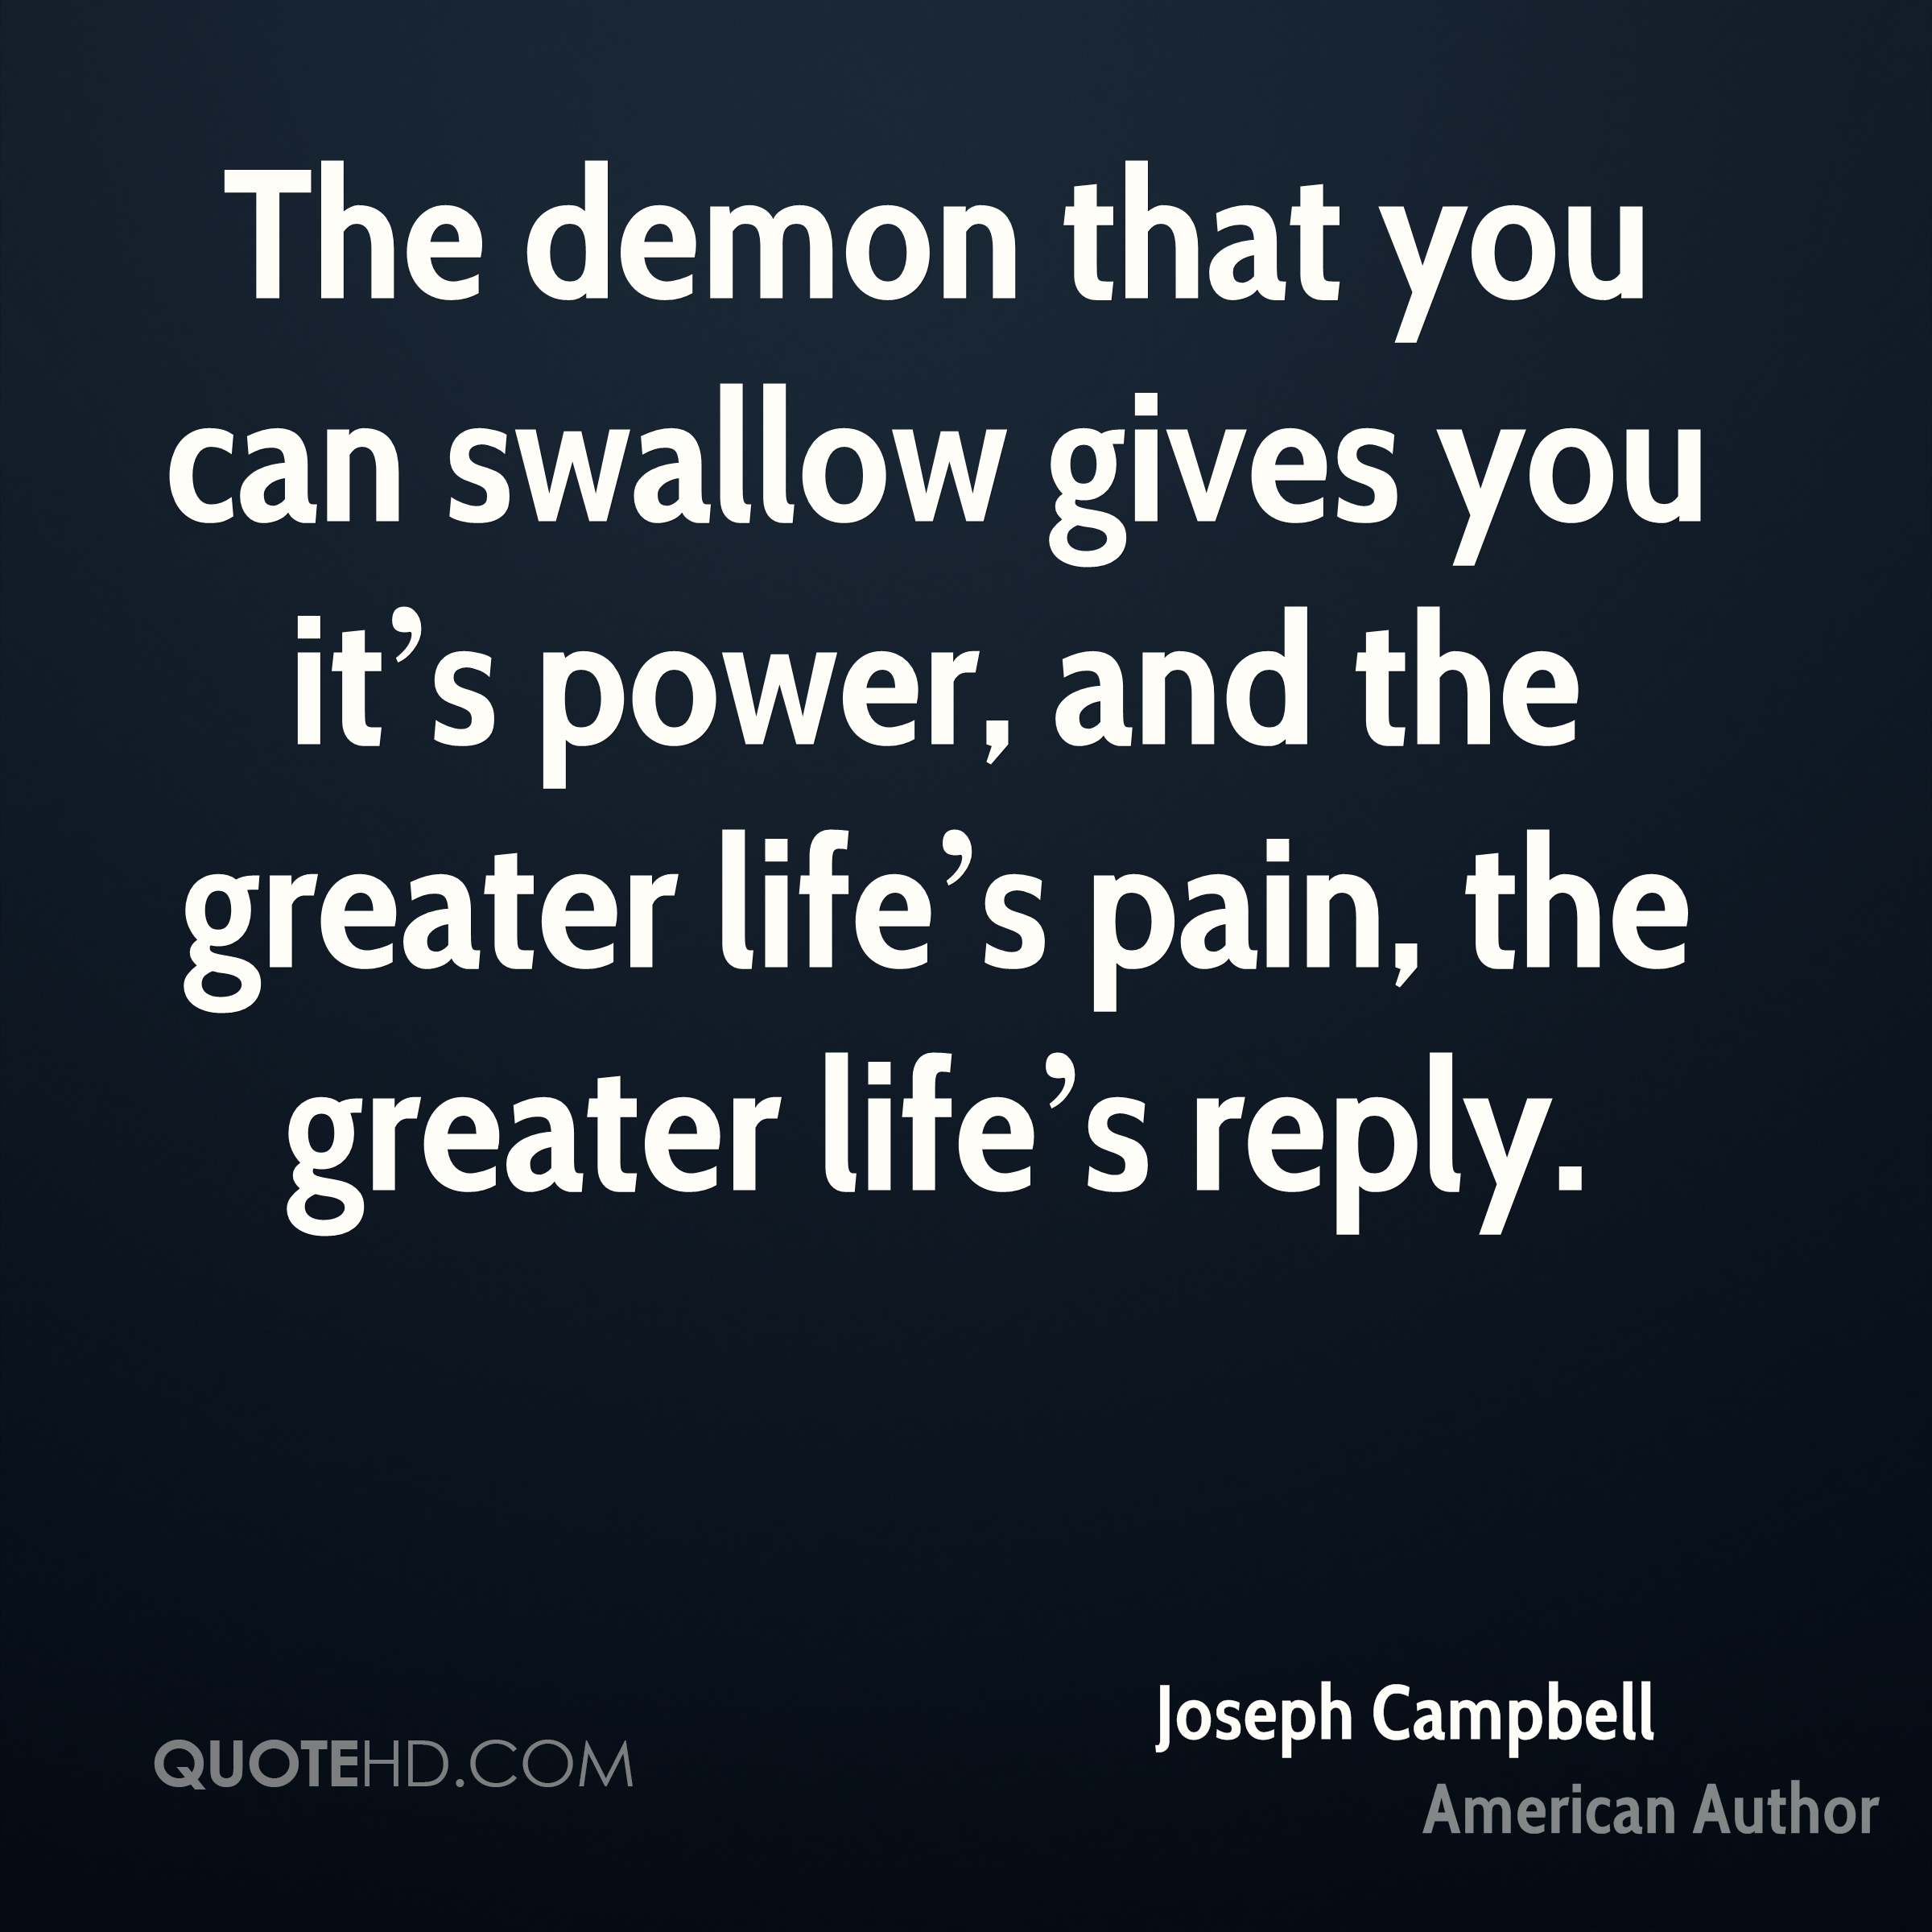 Joseph Campbell Quotes On Love: Joseph Campbell Quotes